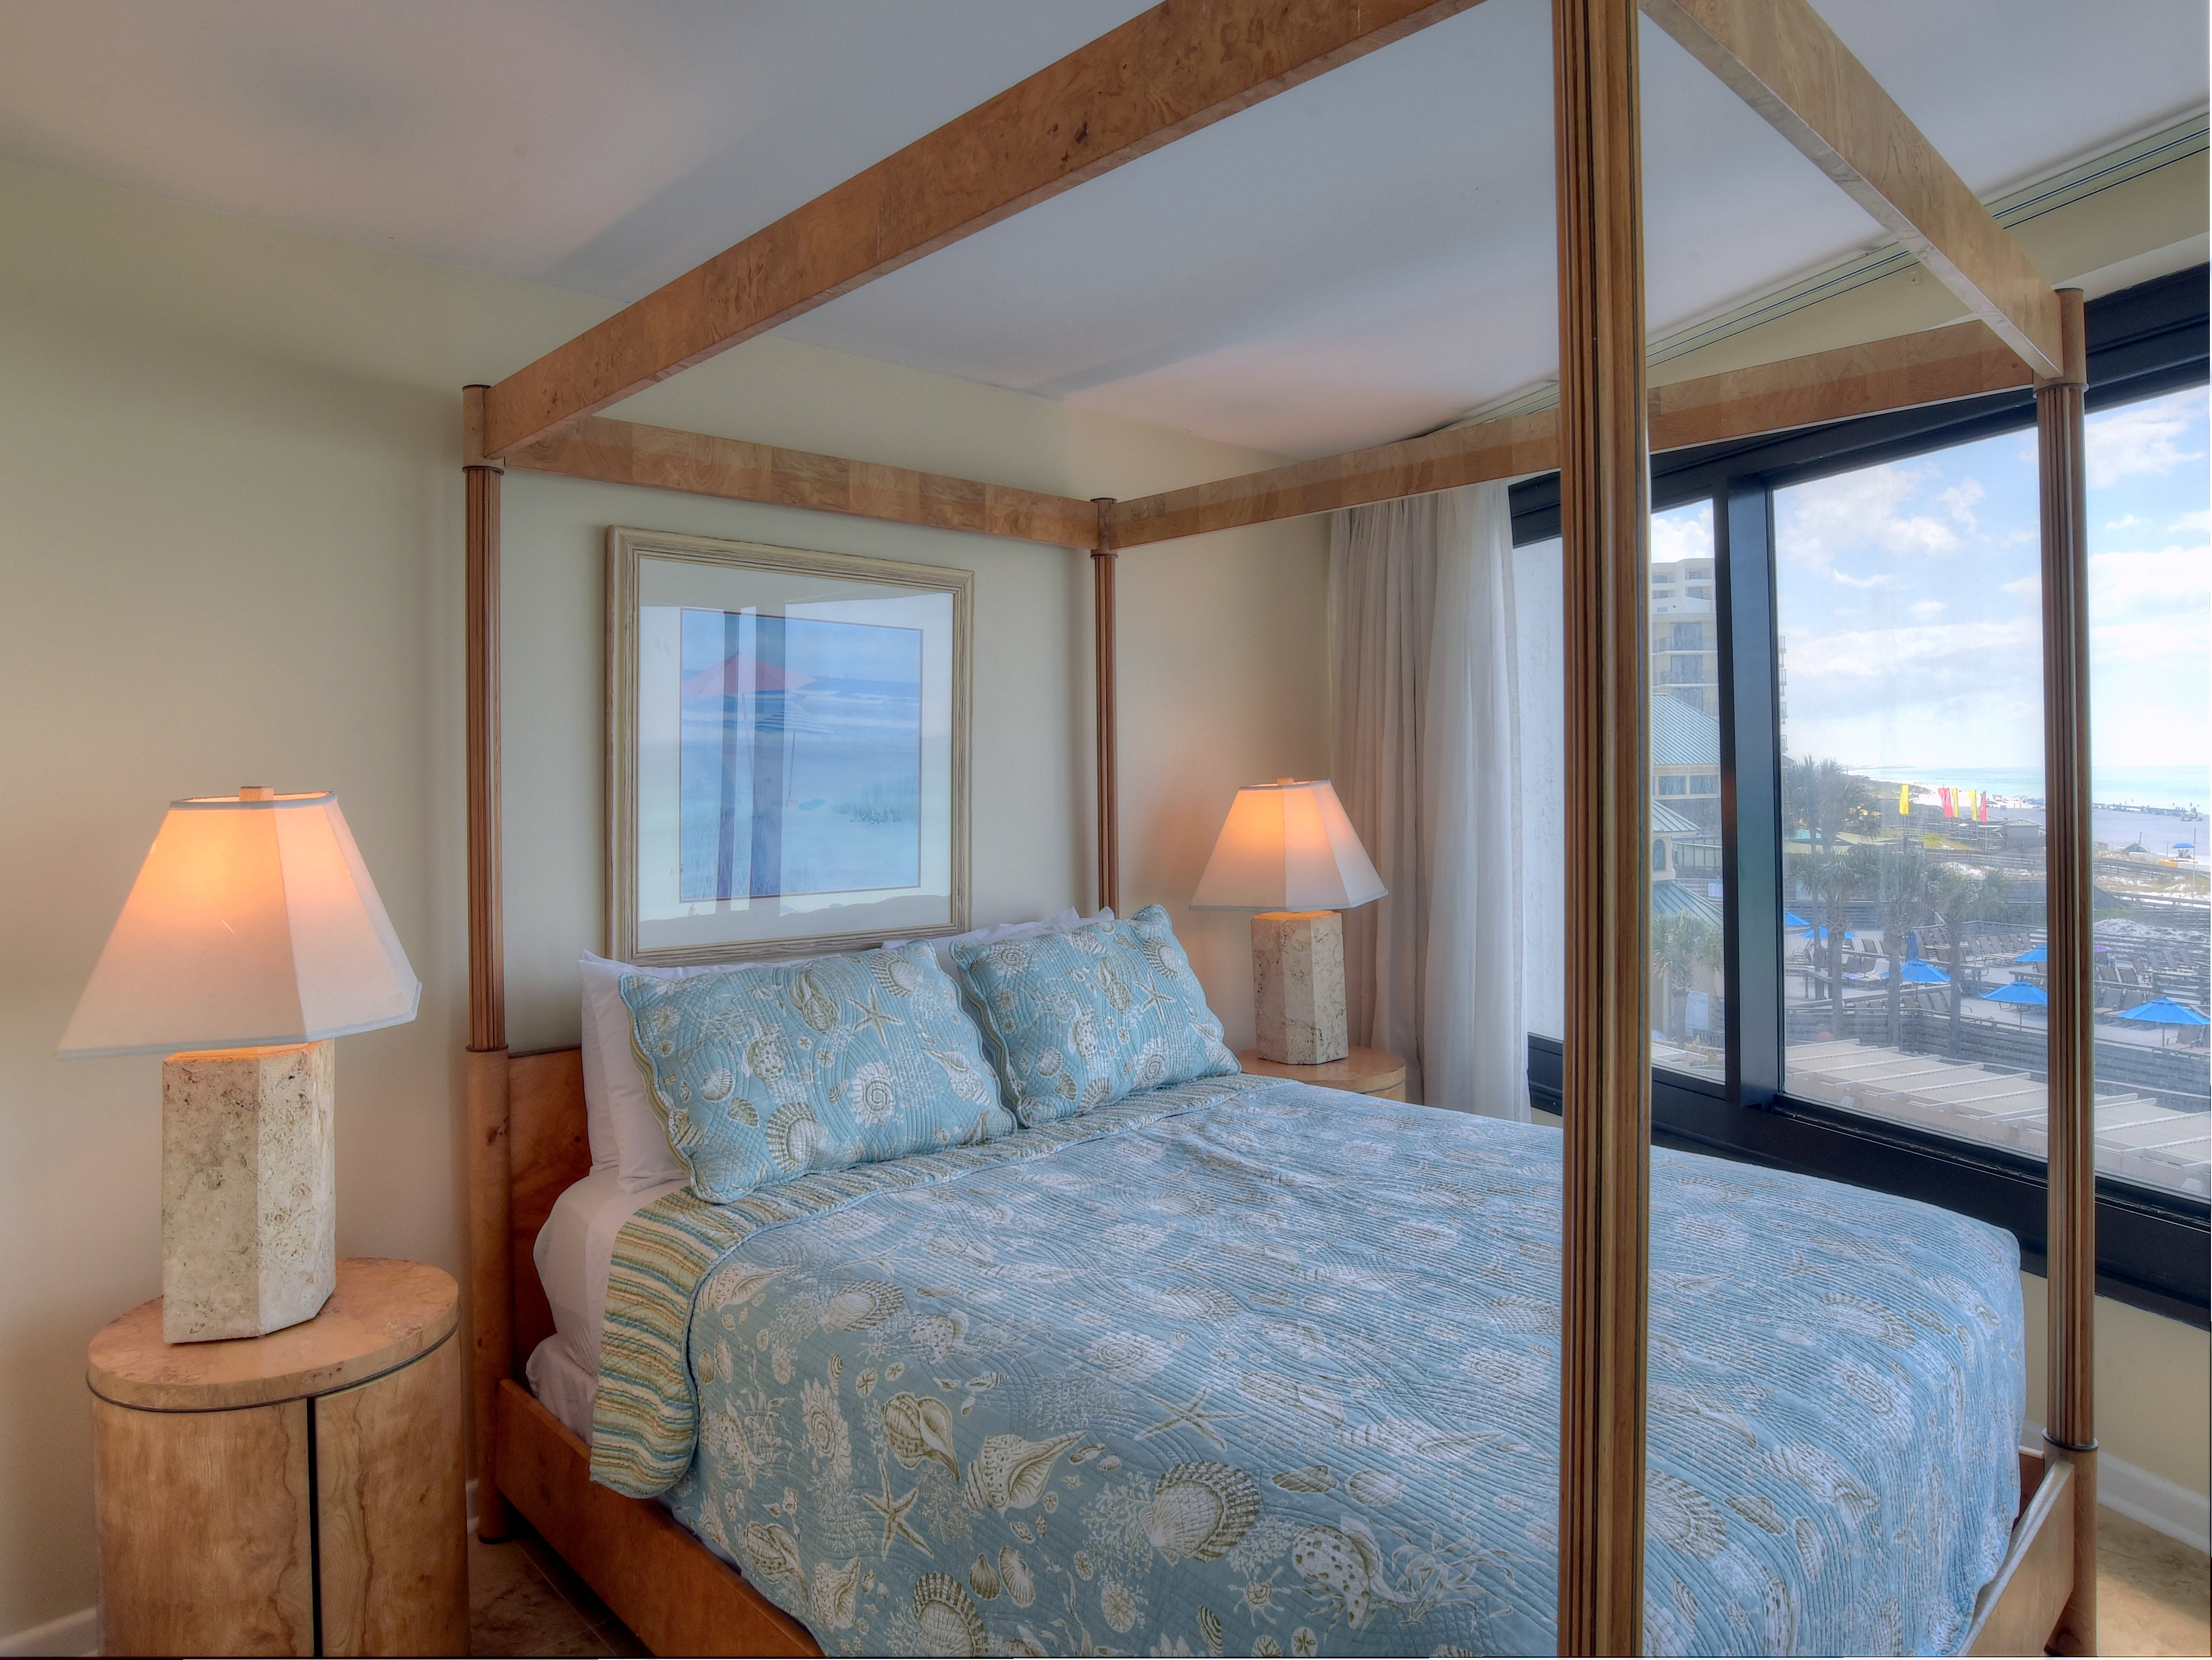 4243 Beachside Two Condo rental in Beachside Towers at Sandestin in Destin Florida - #18